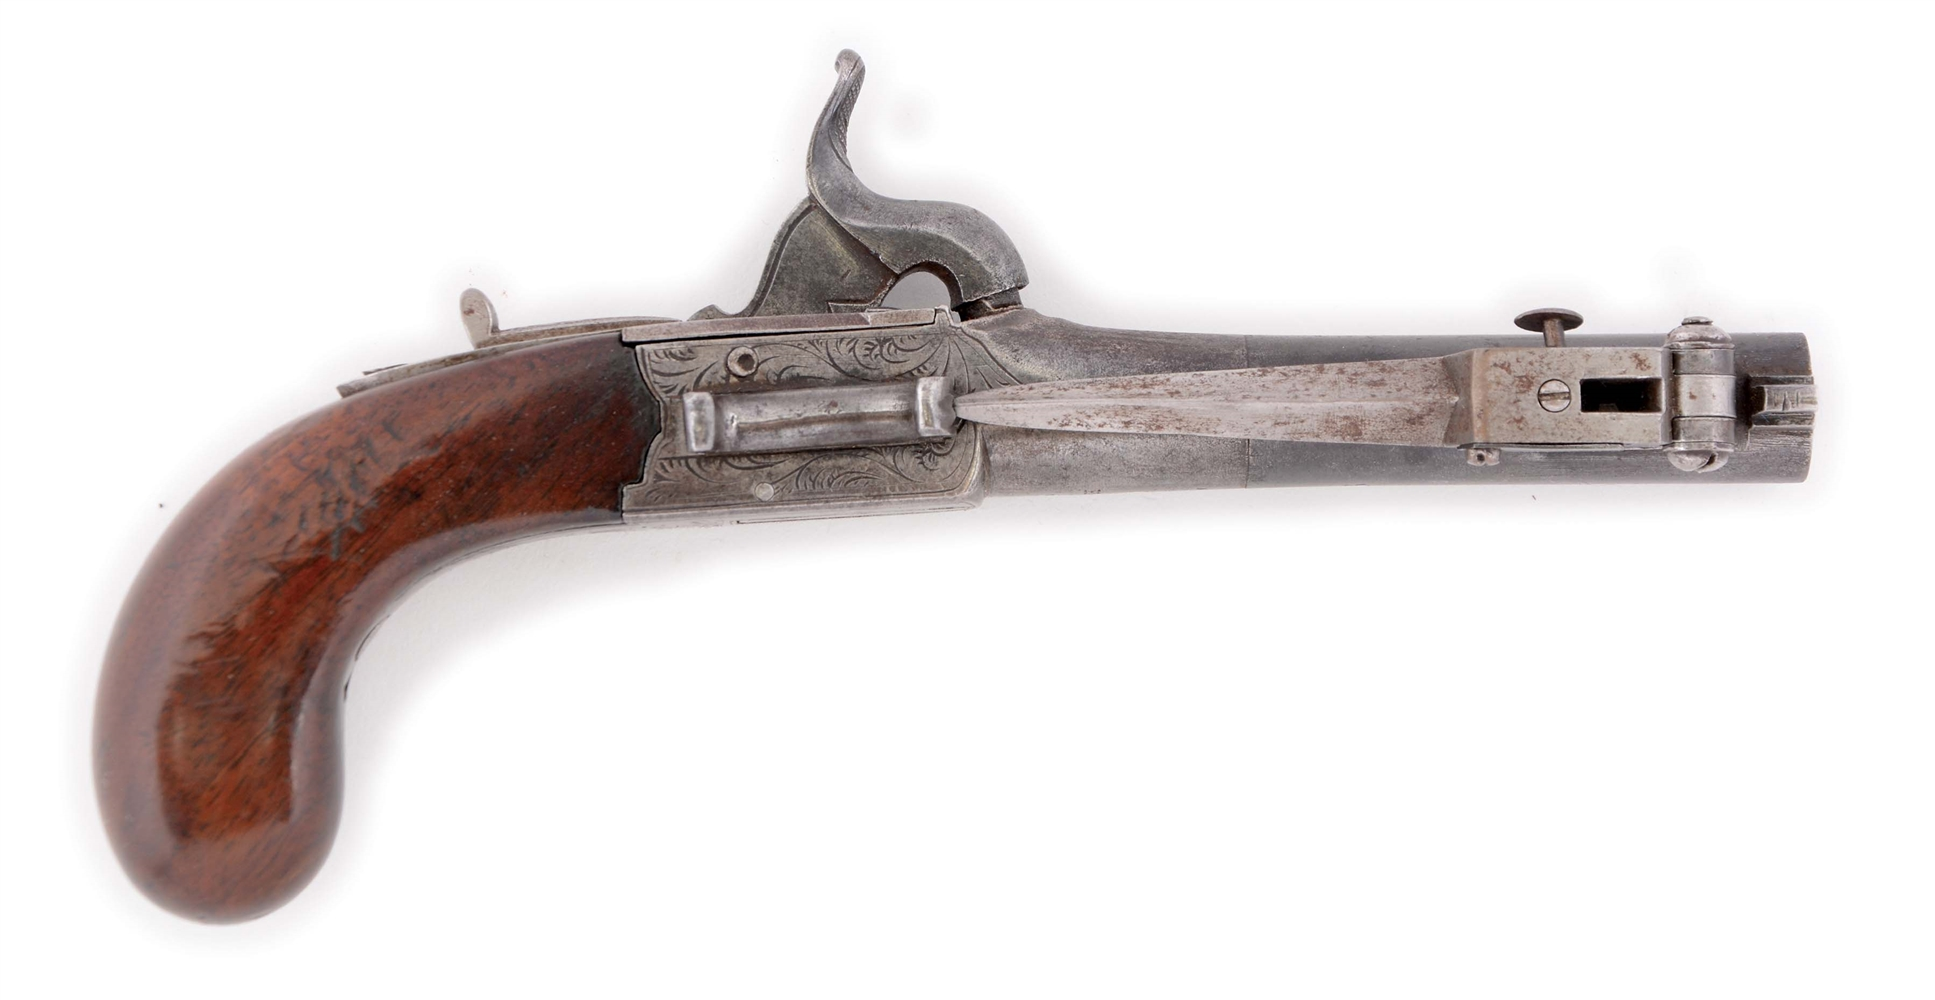 (A) AN UNUSUAL PERCUSSION BOXLOCK ENGLISH PISTOL WITH SIDE SNAP BAYONET RETAILED BY TRYON, PHILADELPHIA. PISTOL BY R.H. WITH BRITISH PROOFS, CIRCA 1840.